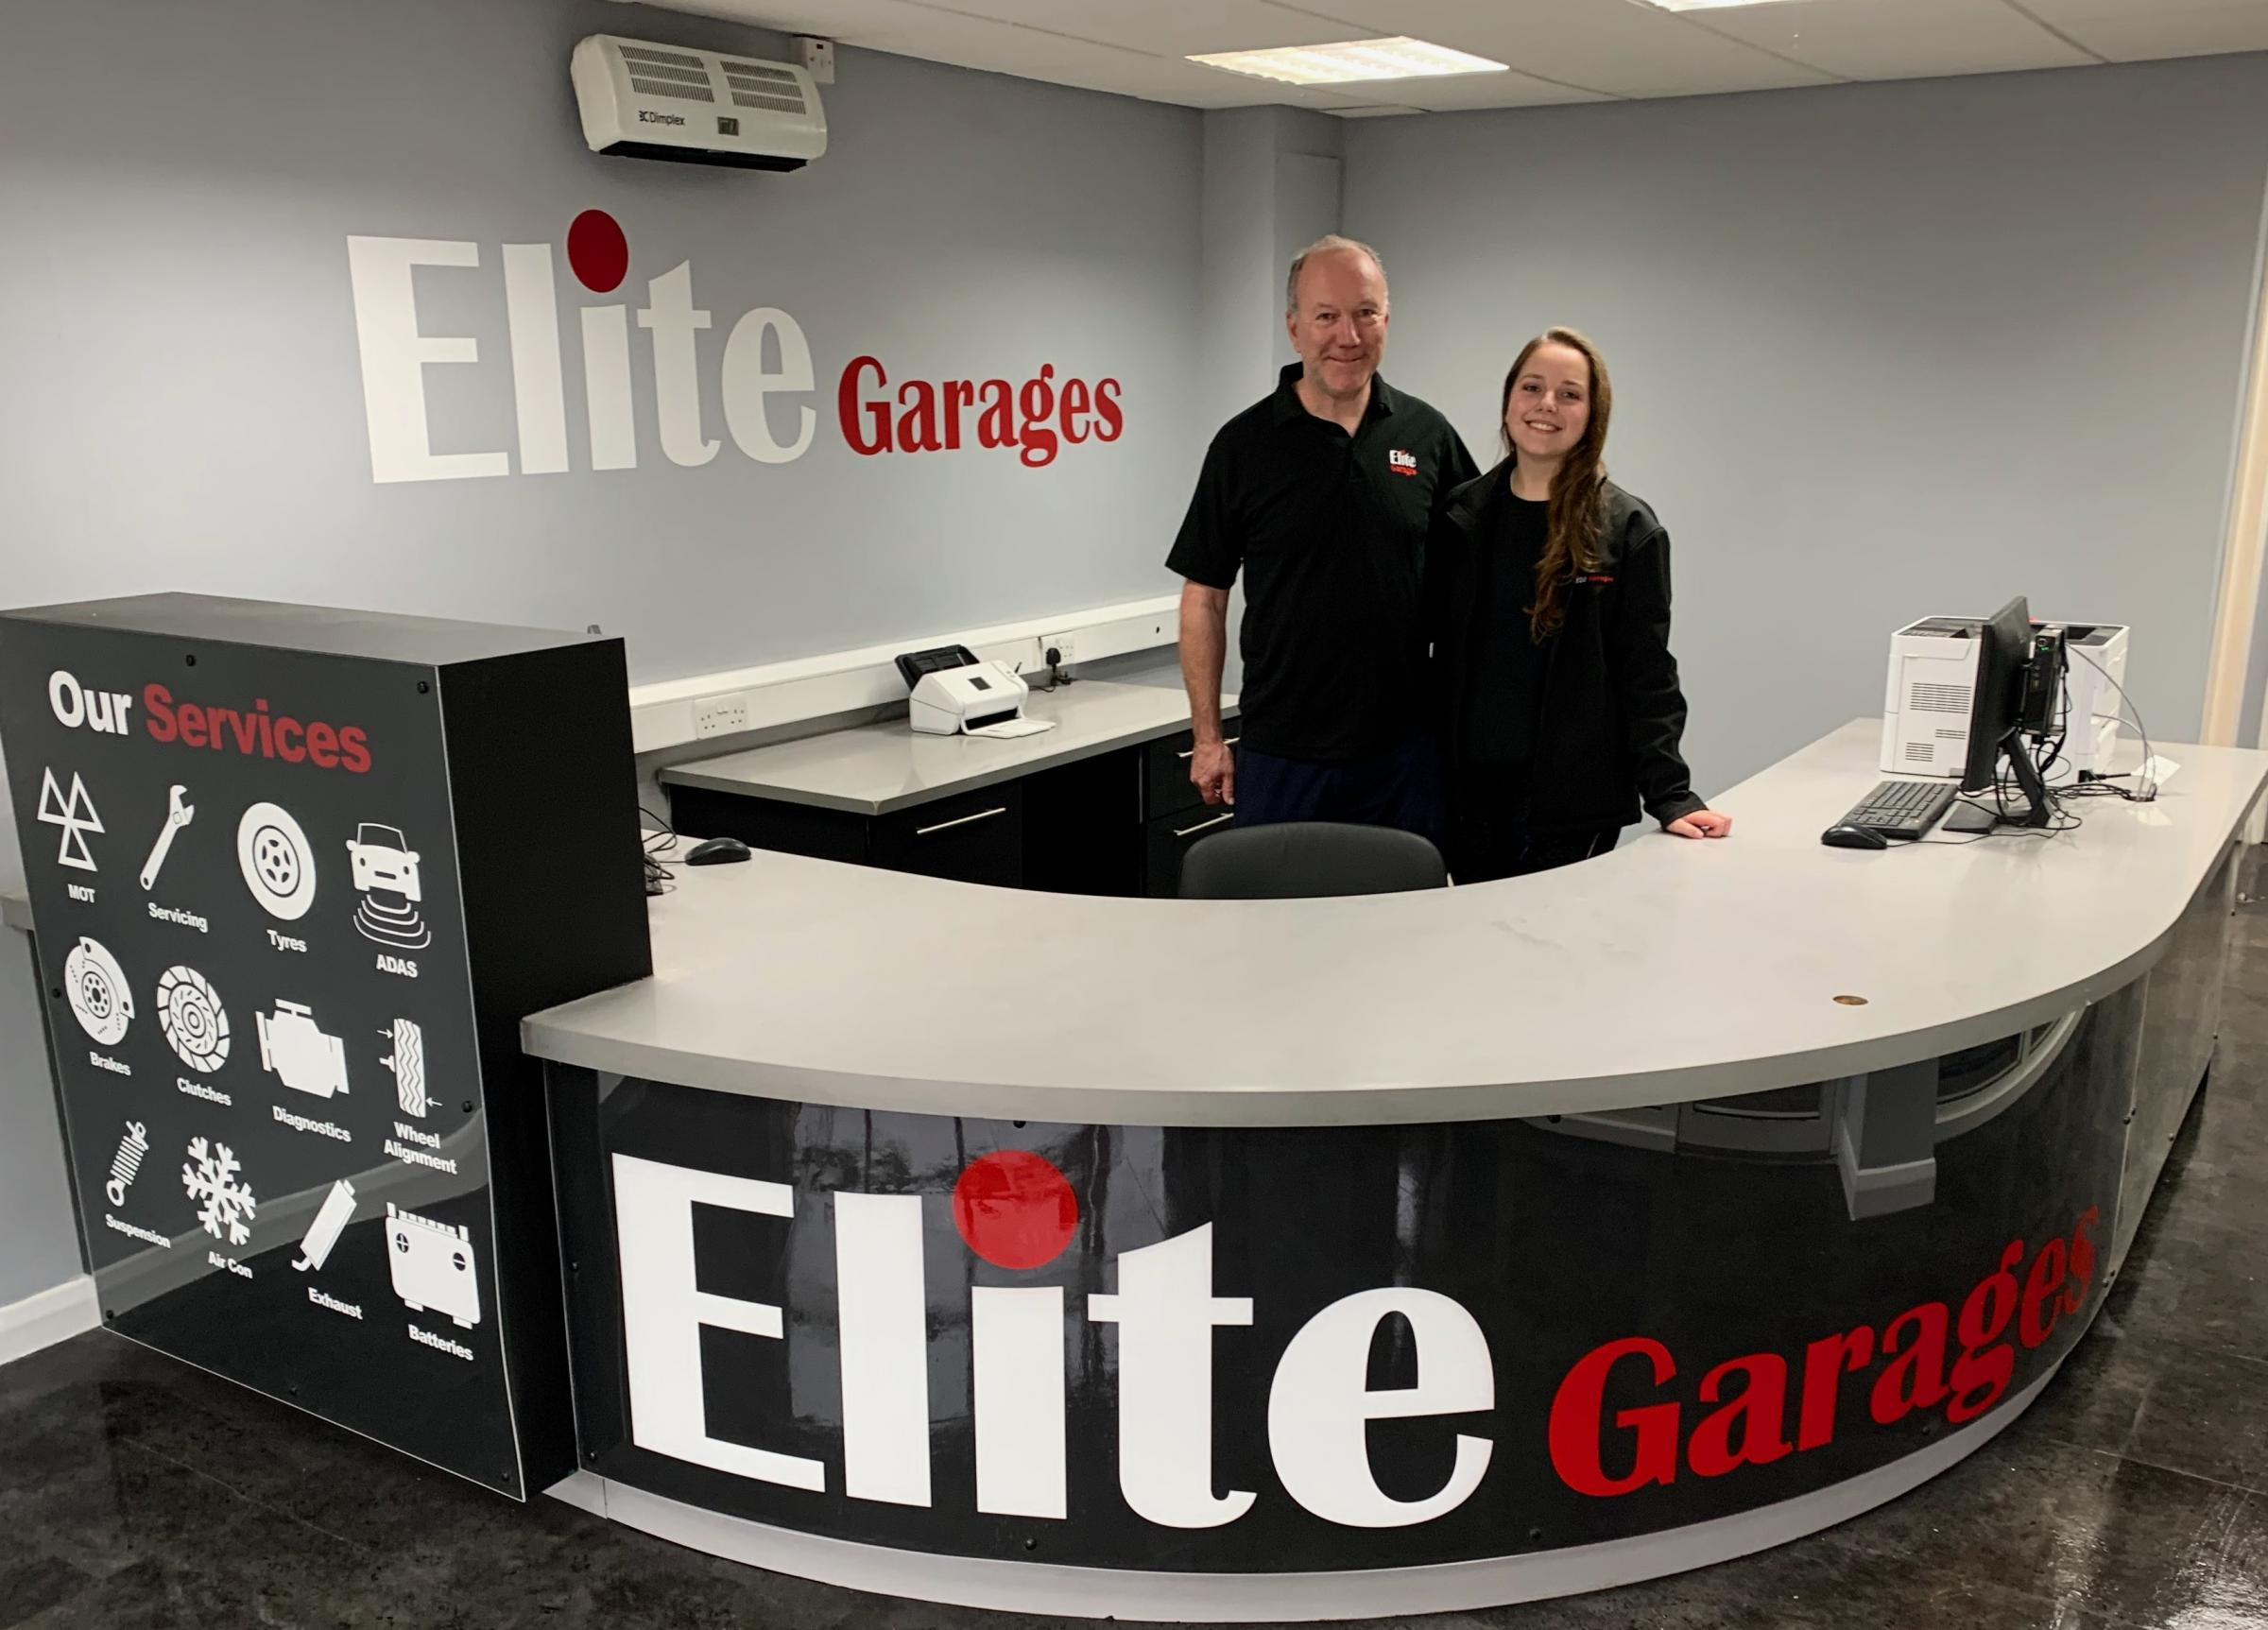 Richard and Kelsie Whittemore at Elite Garages, Maidstone